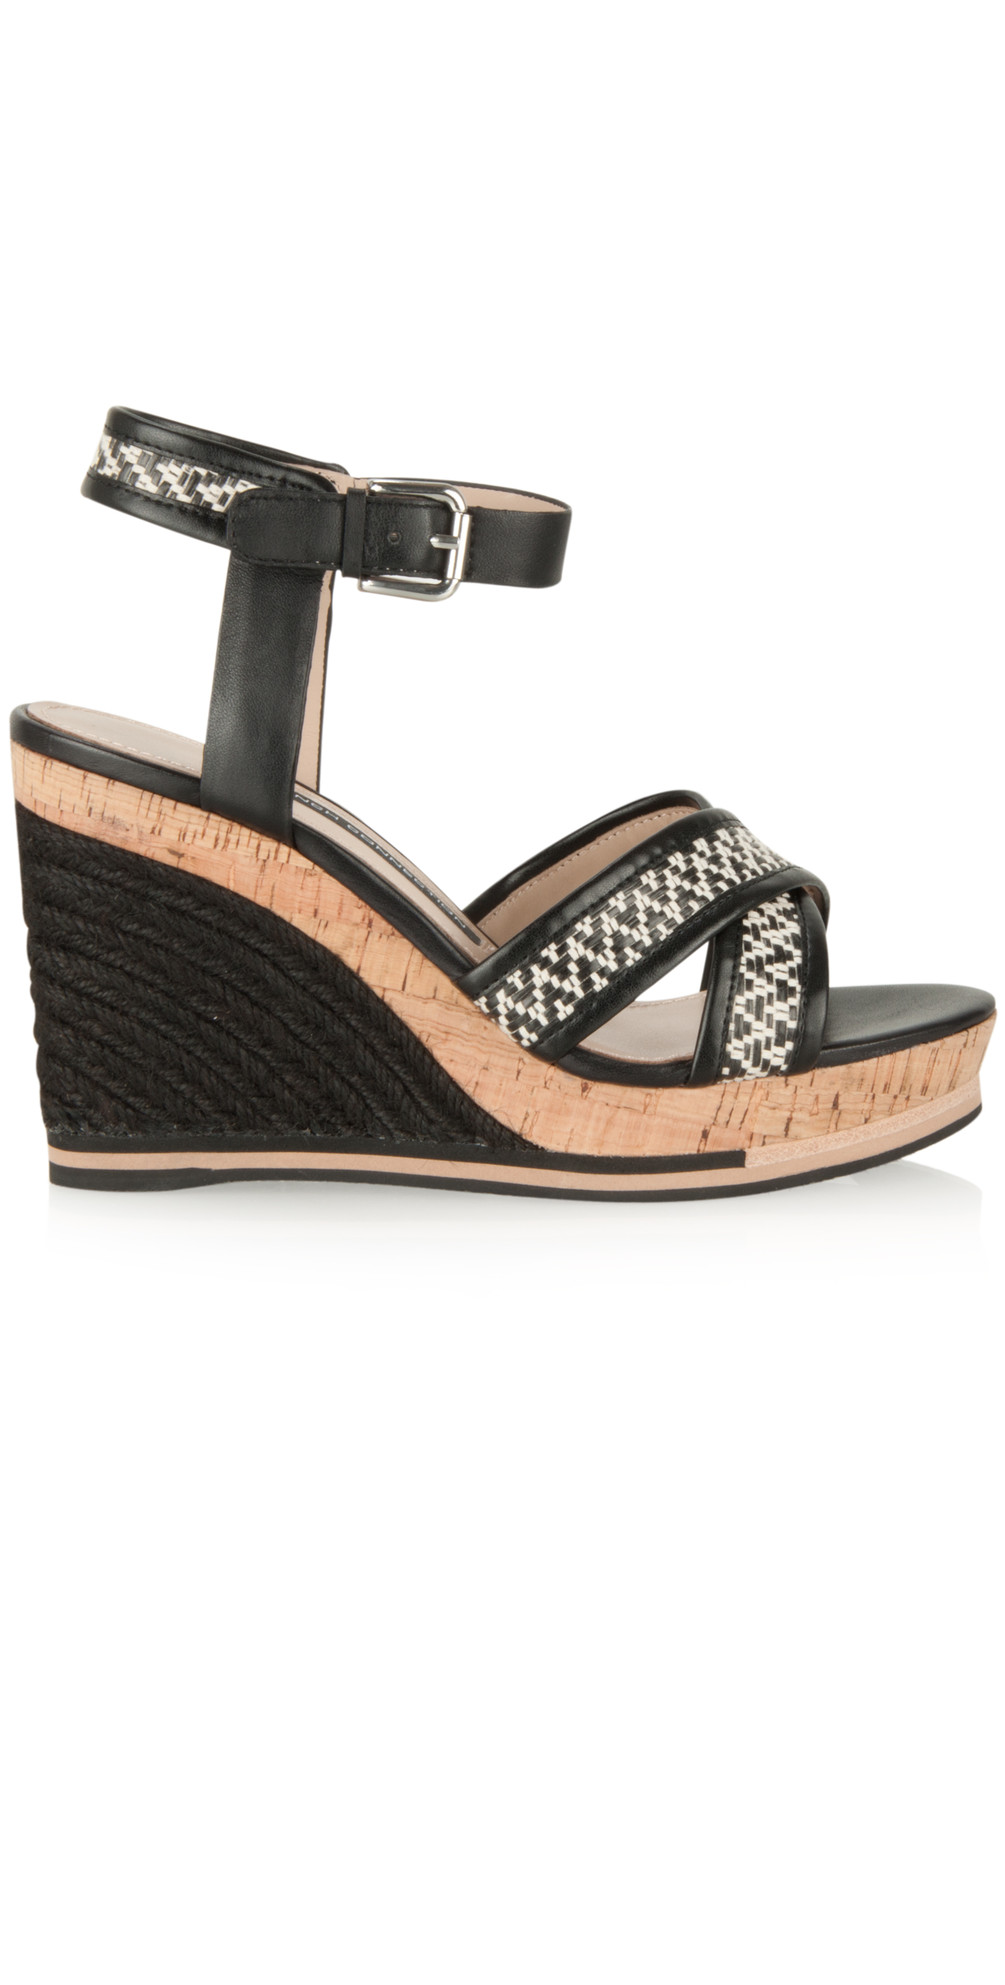 639053459448 French Connection Shoes NEW - Lata Wedge in Black White